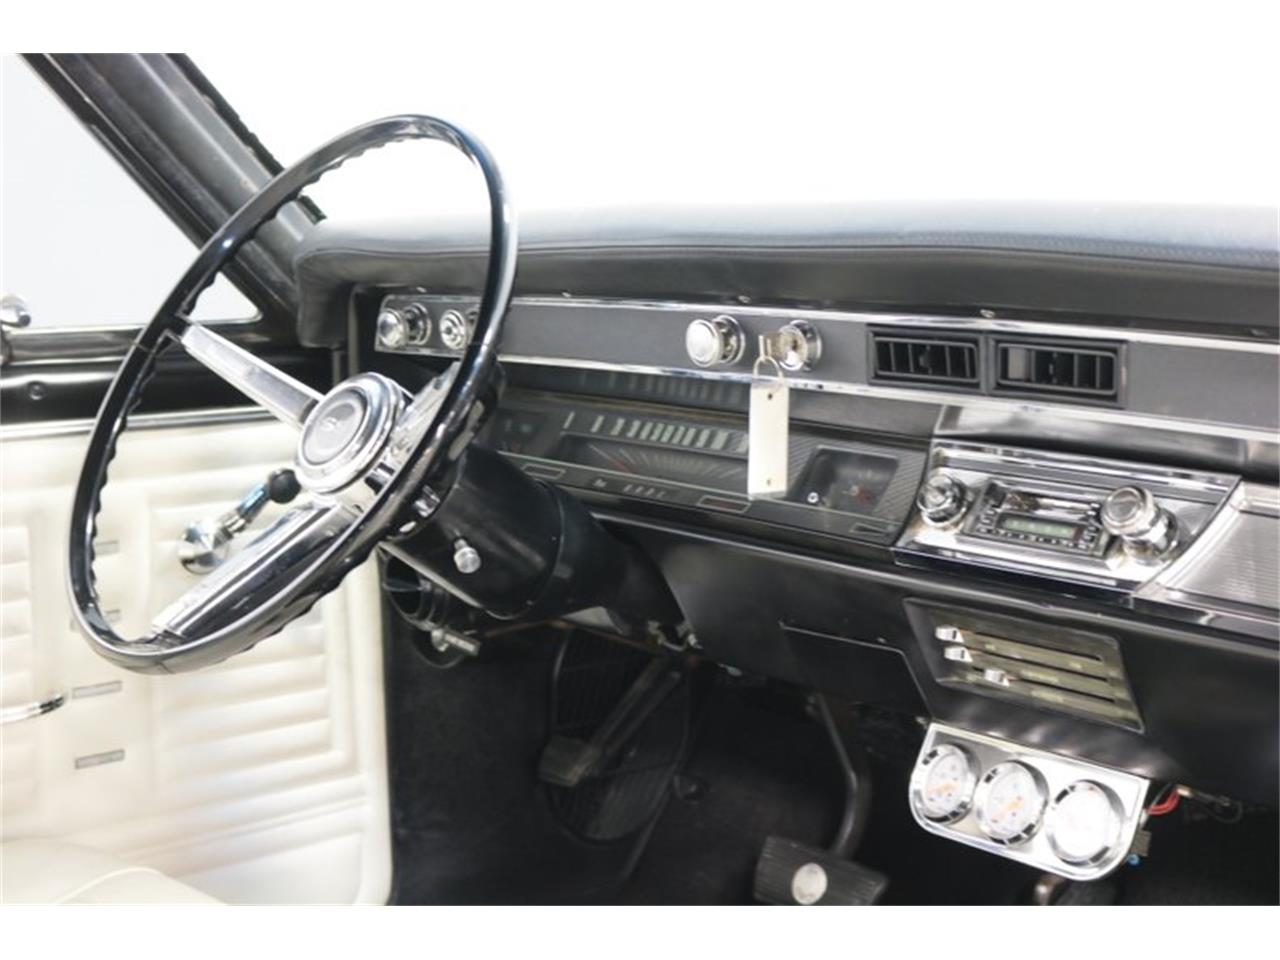 Large Picture of Classic 1967 Chevelle located in Ft Worth Texas Offered by Streetside Classics - Dallas / Fort Worth - Q46D